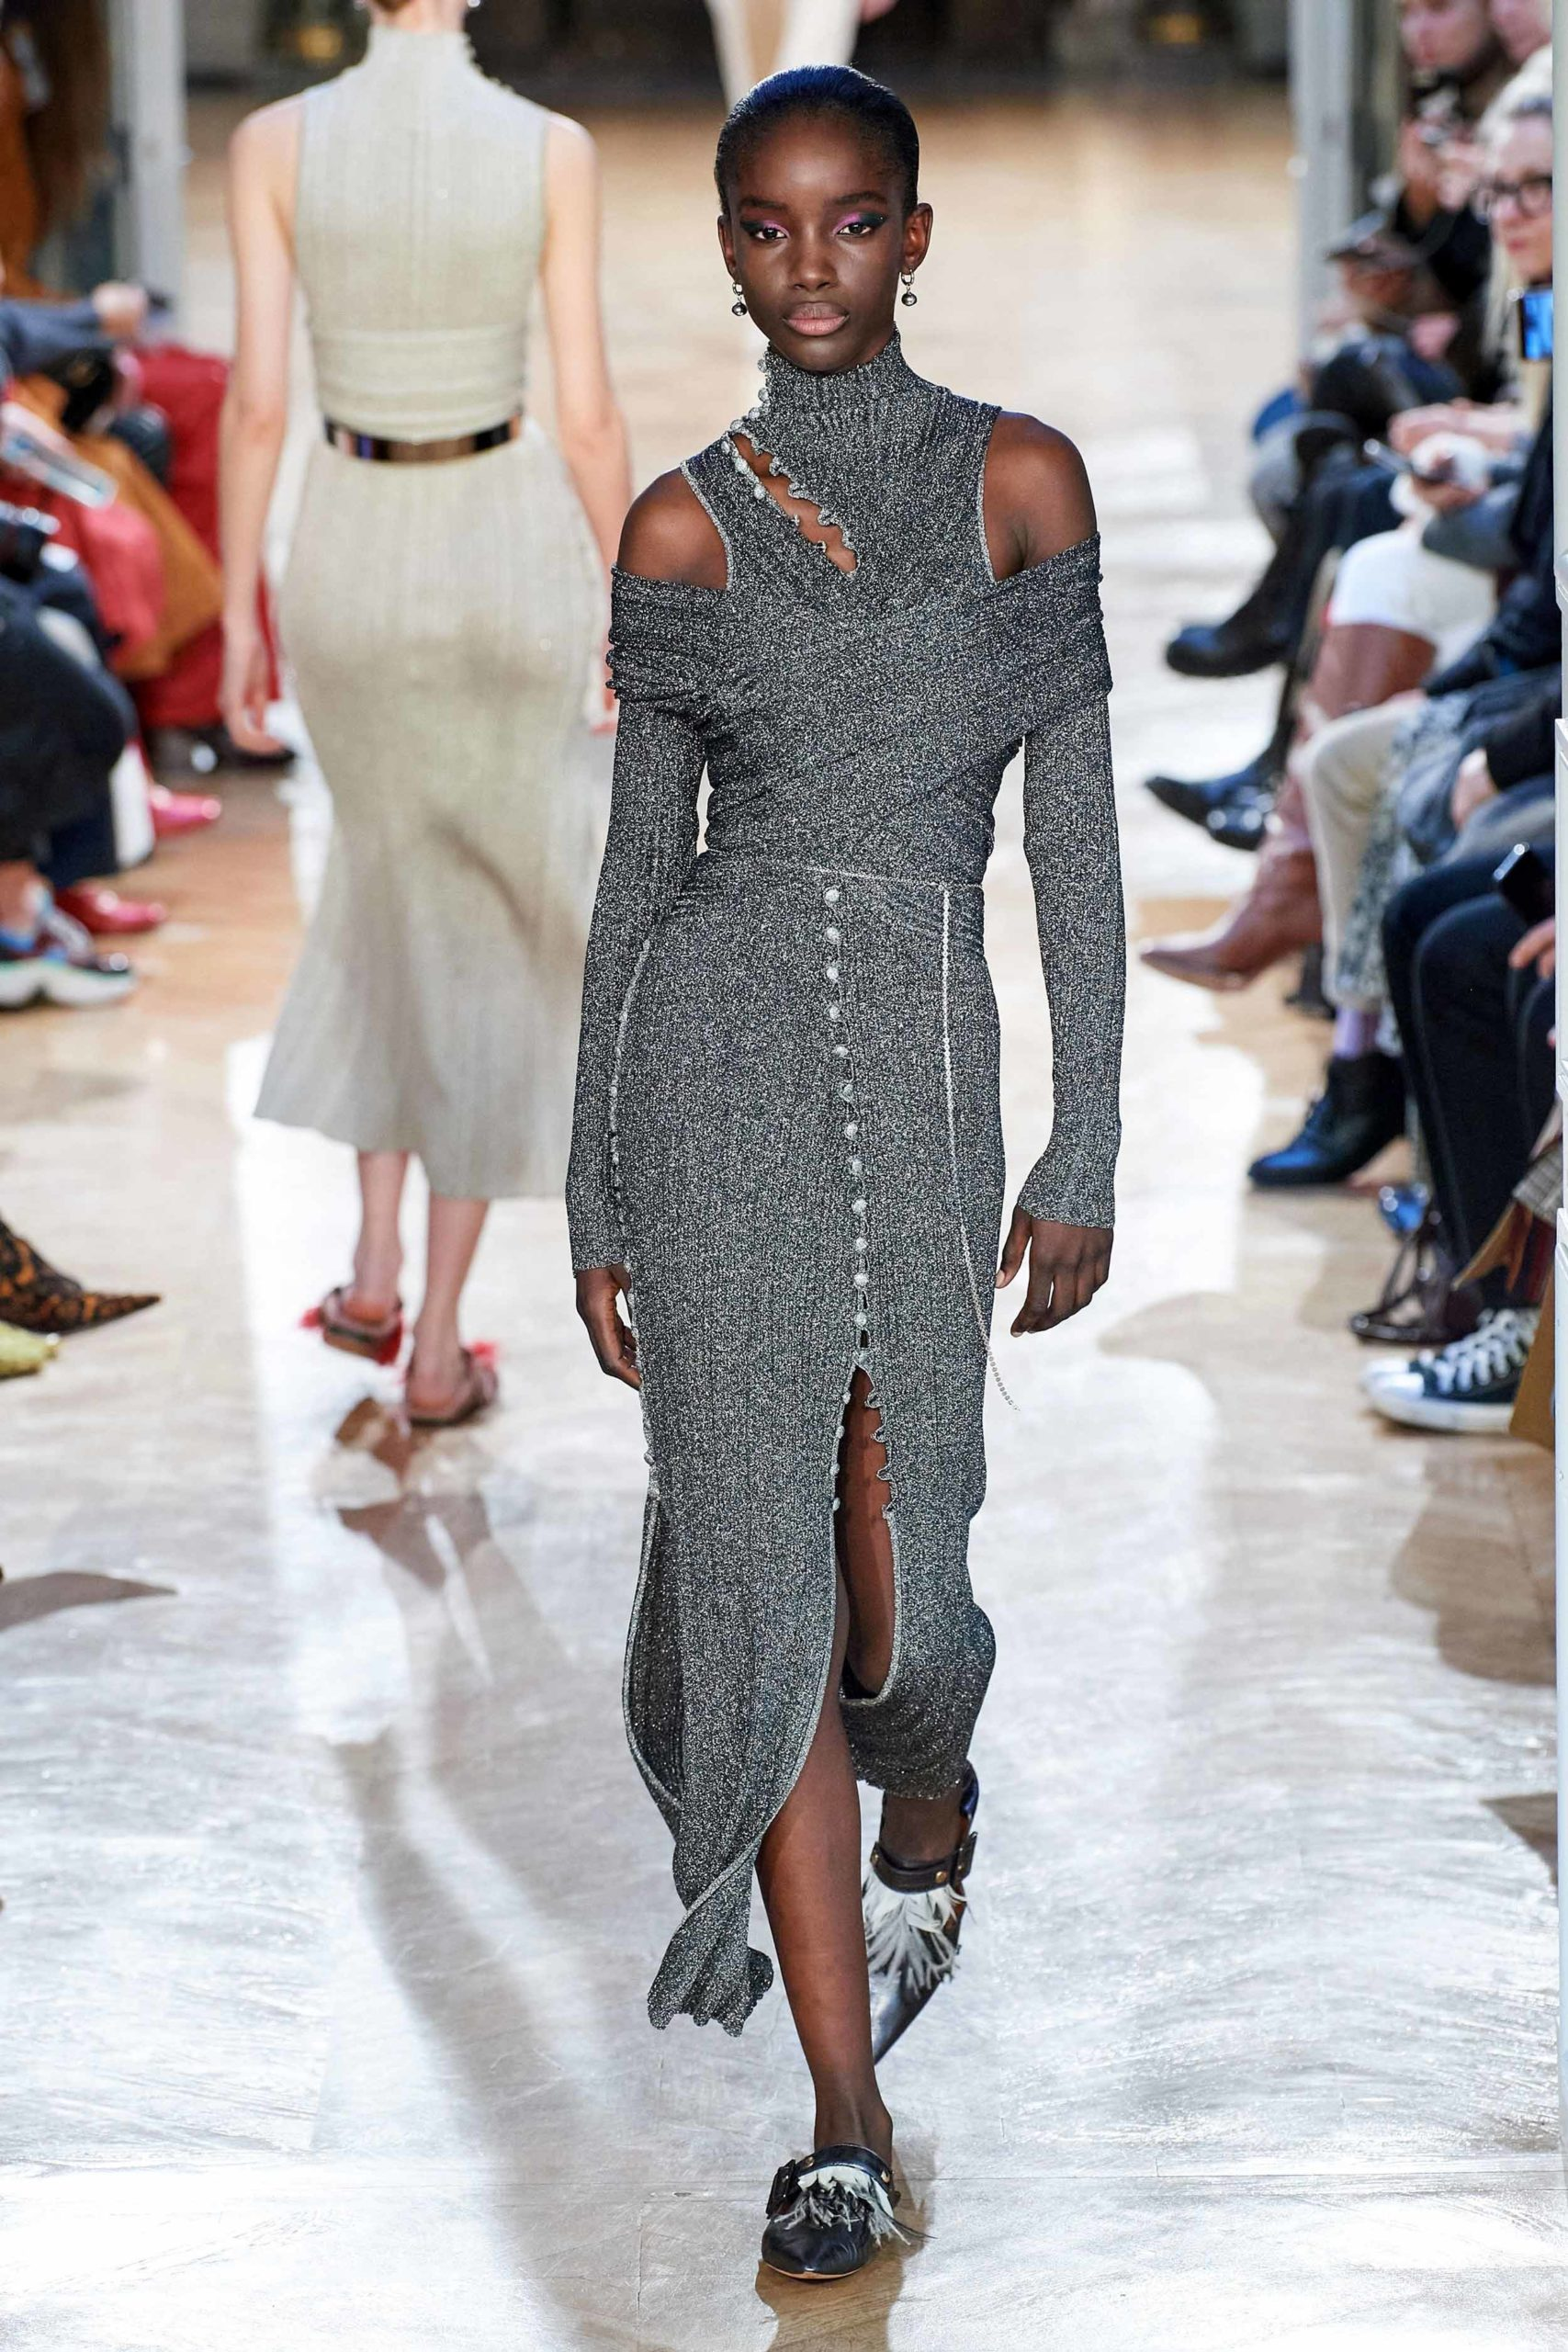 Altuzarra-Fall-2020-trends-runway-coverage-Ready-To-Wear-Vogue-grey-dress-and-neckline-sexy-shoulder